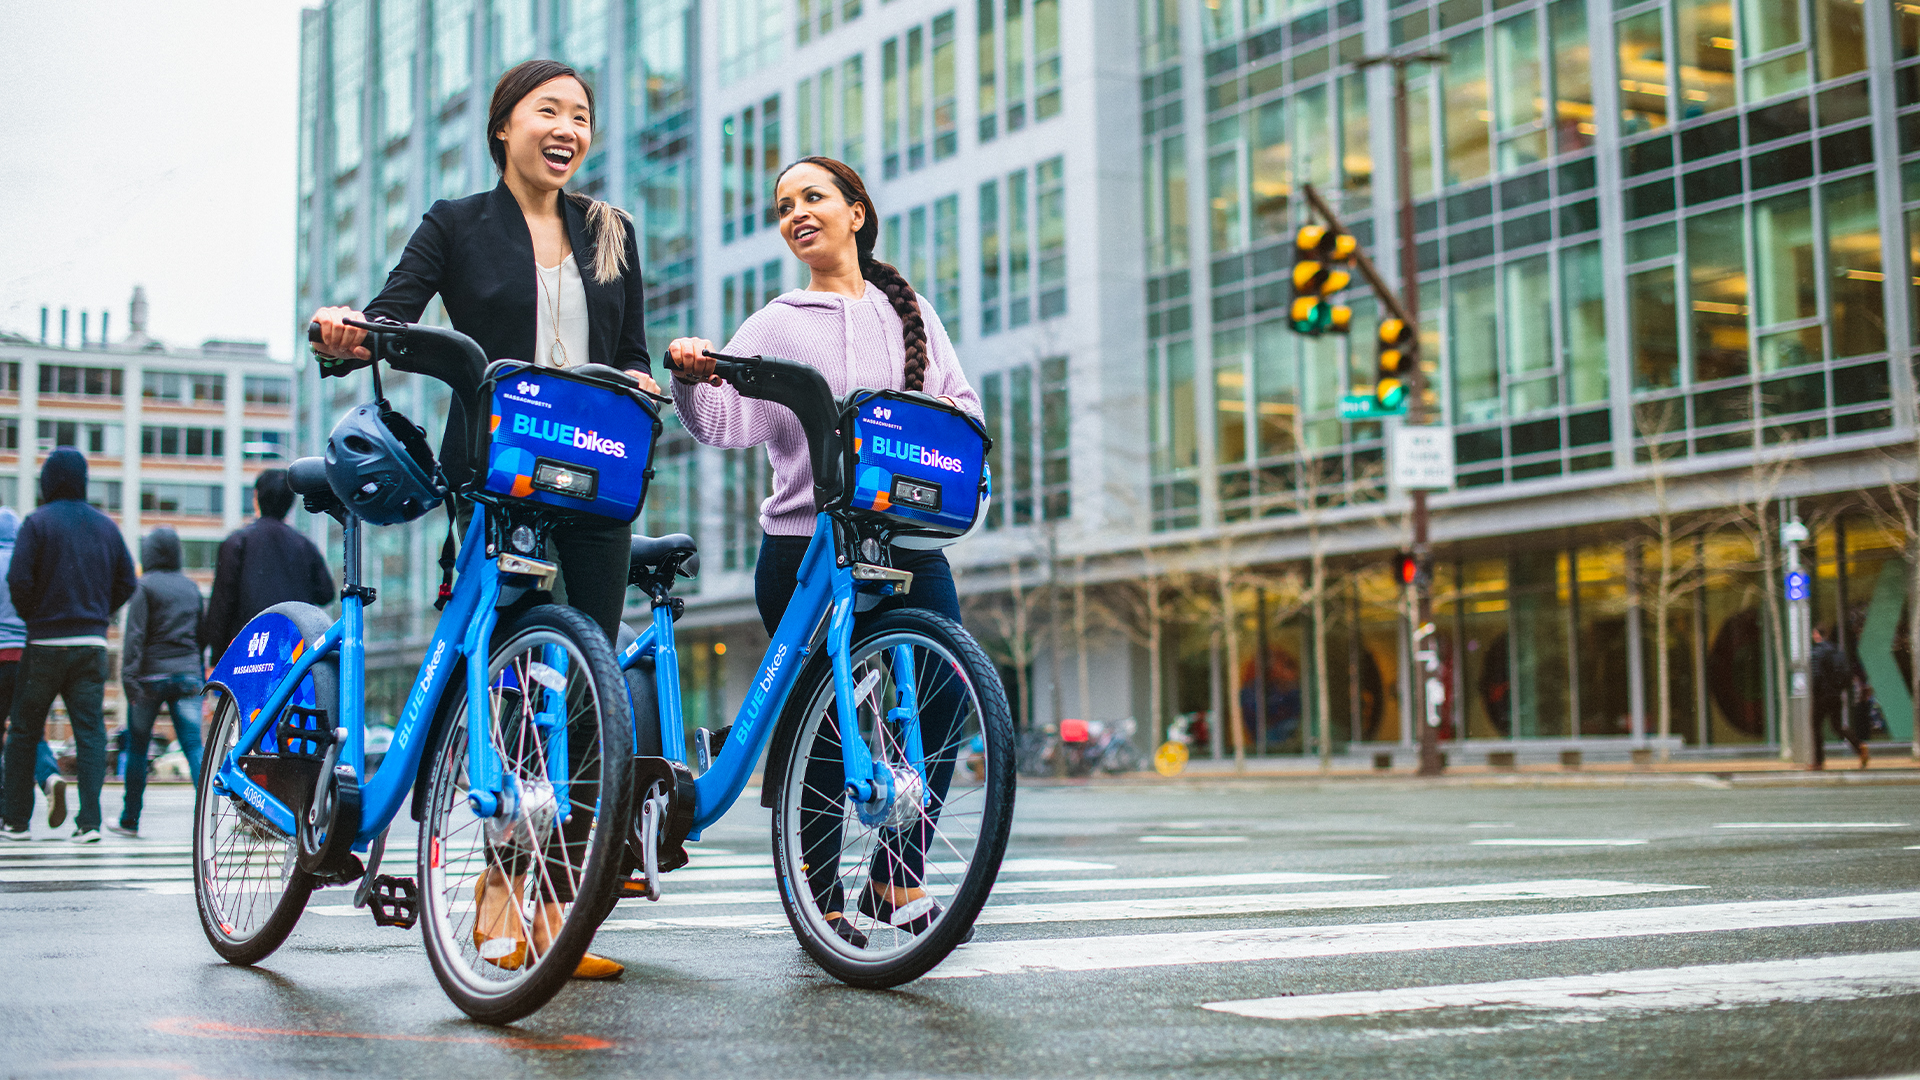 Discounted Bluebikes Memberships Now Available!